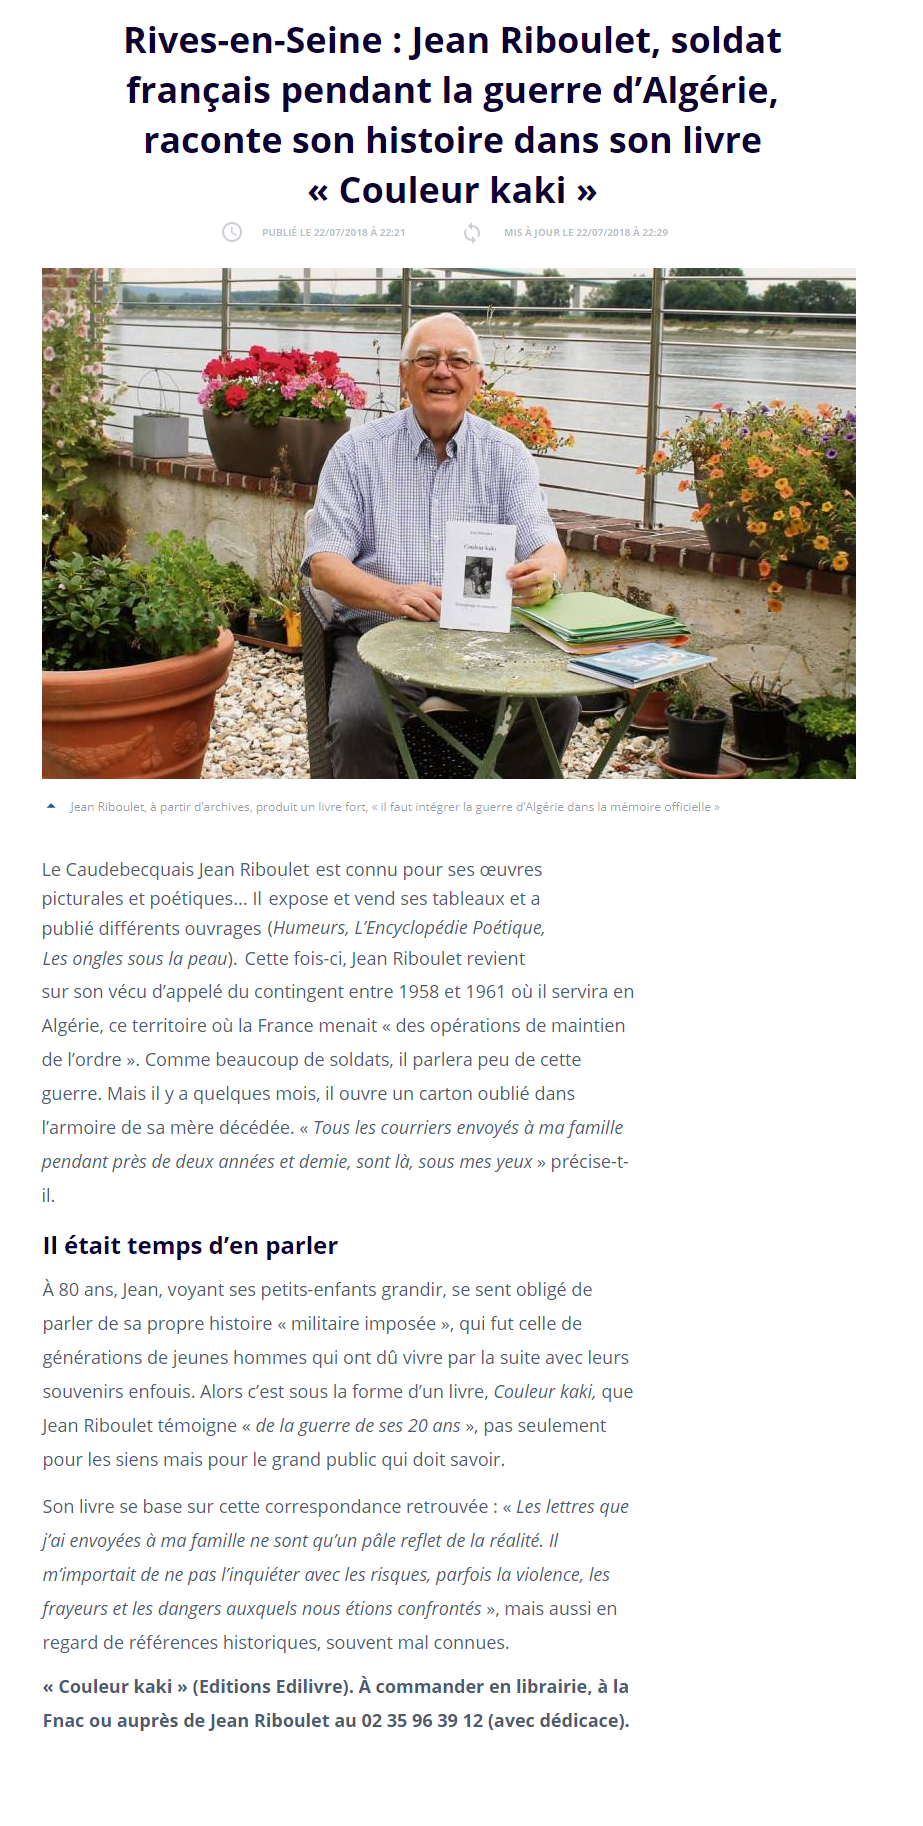 article_Paris_Normandie_Jean_Riboulet_2018_Edlivre